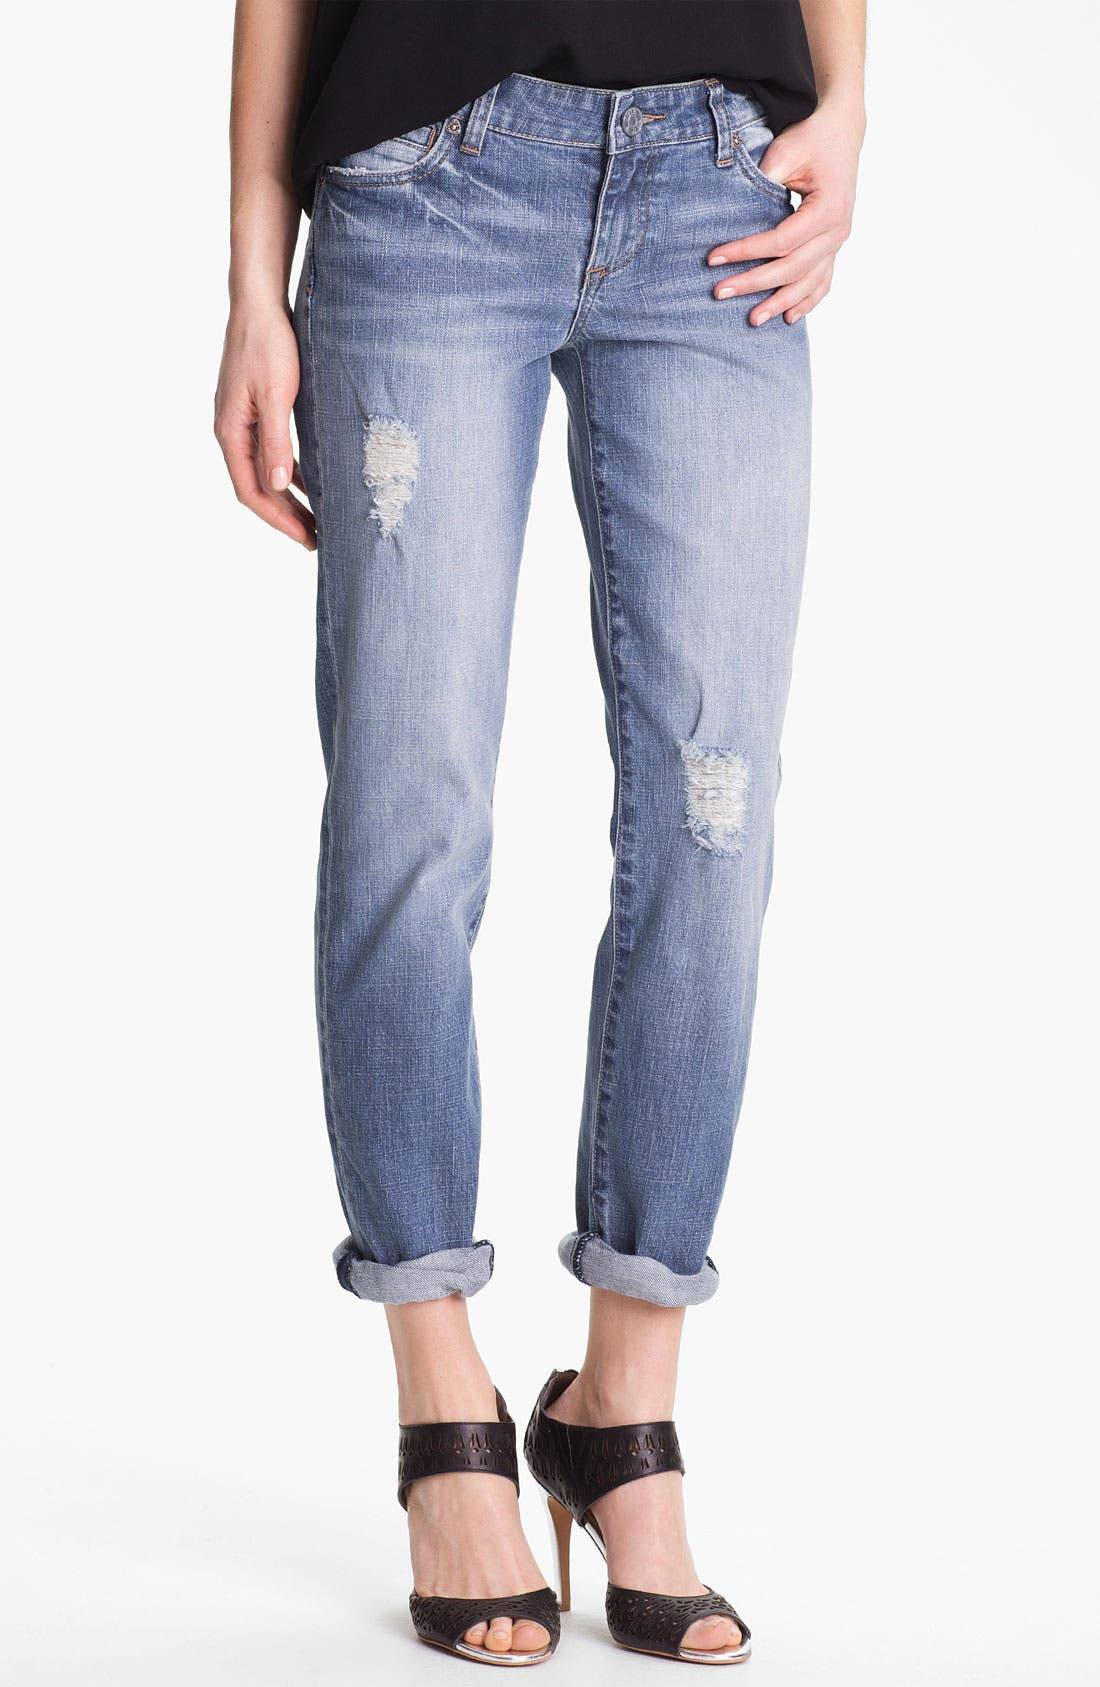 Main Image - KUT from the Kloth 'Catherine' Distressed Slim Boyfriend Jeans (Discover)